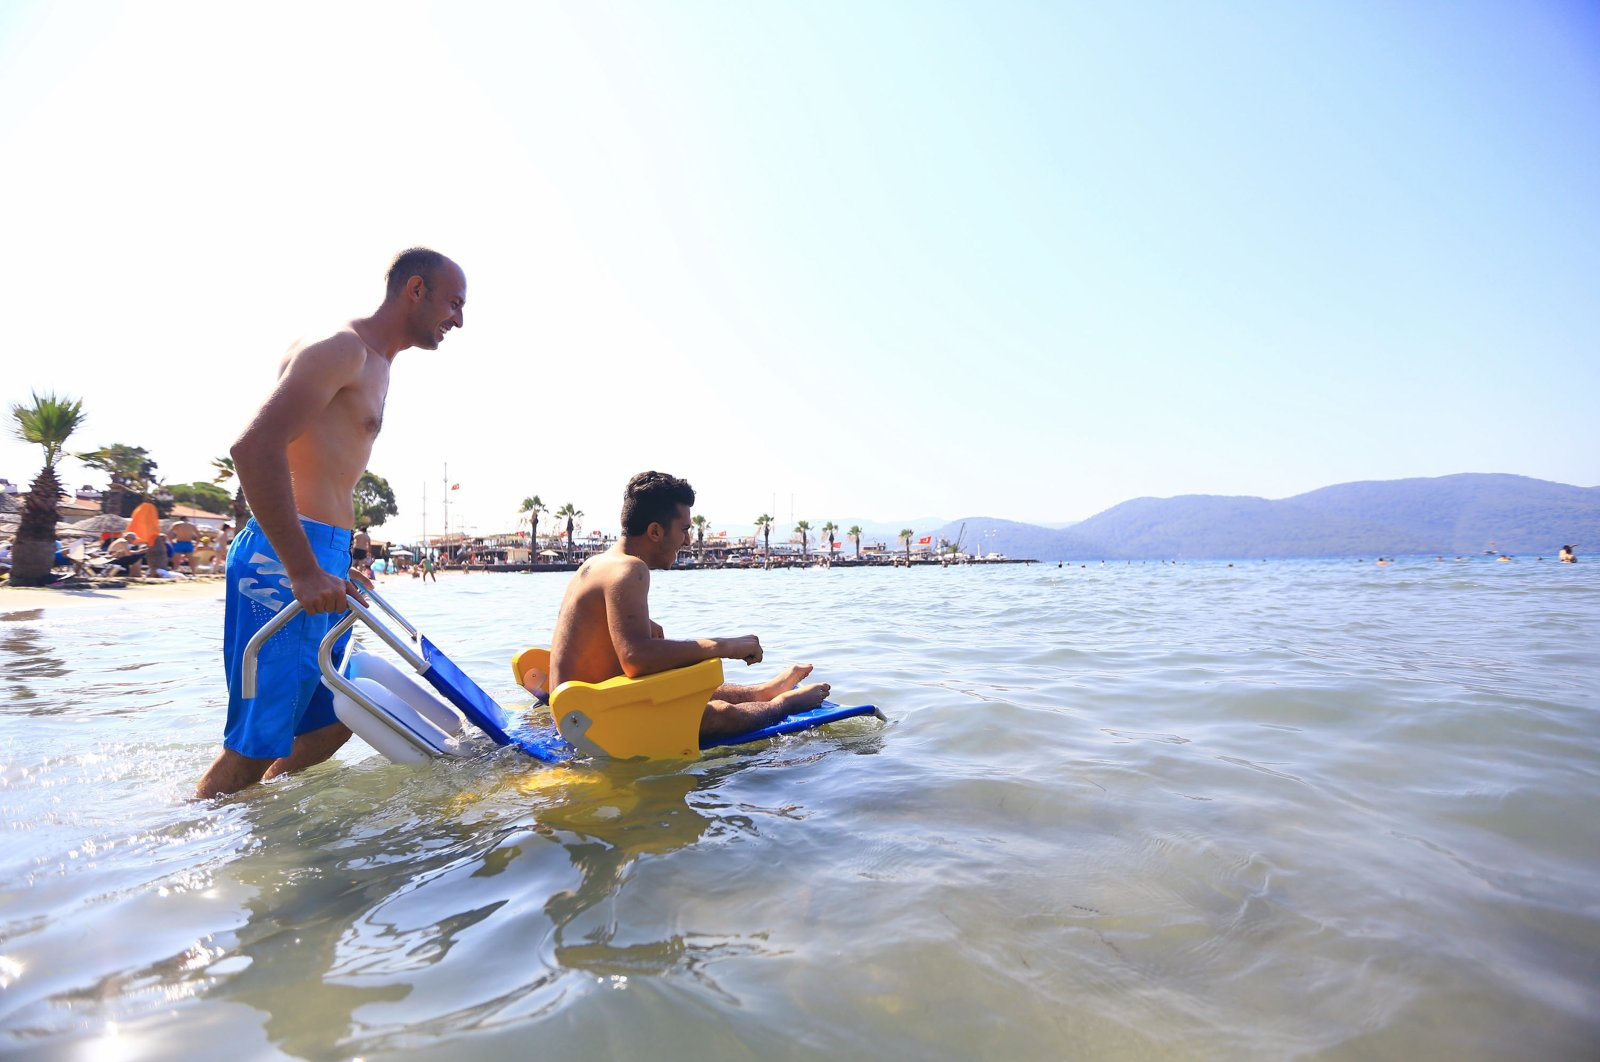 In 2016, Muğla's Metropolitan Municipality launched a project that helps disabled citizens enjoy the sea. (IHA Photo)